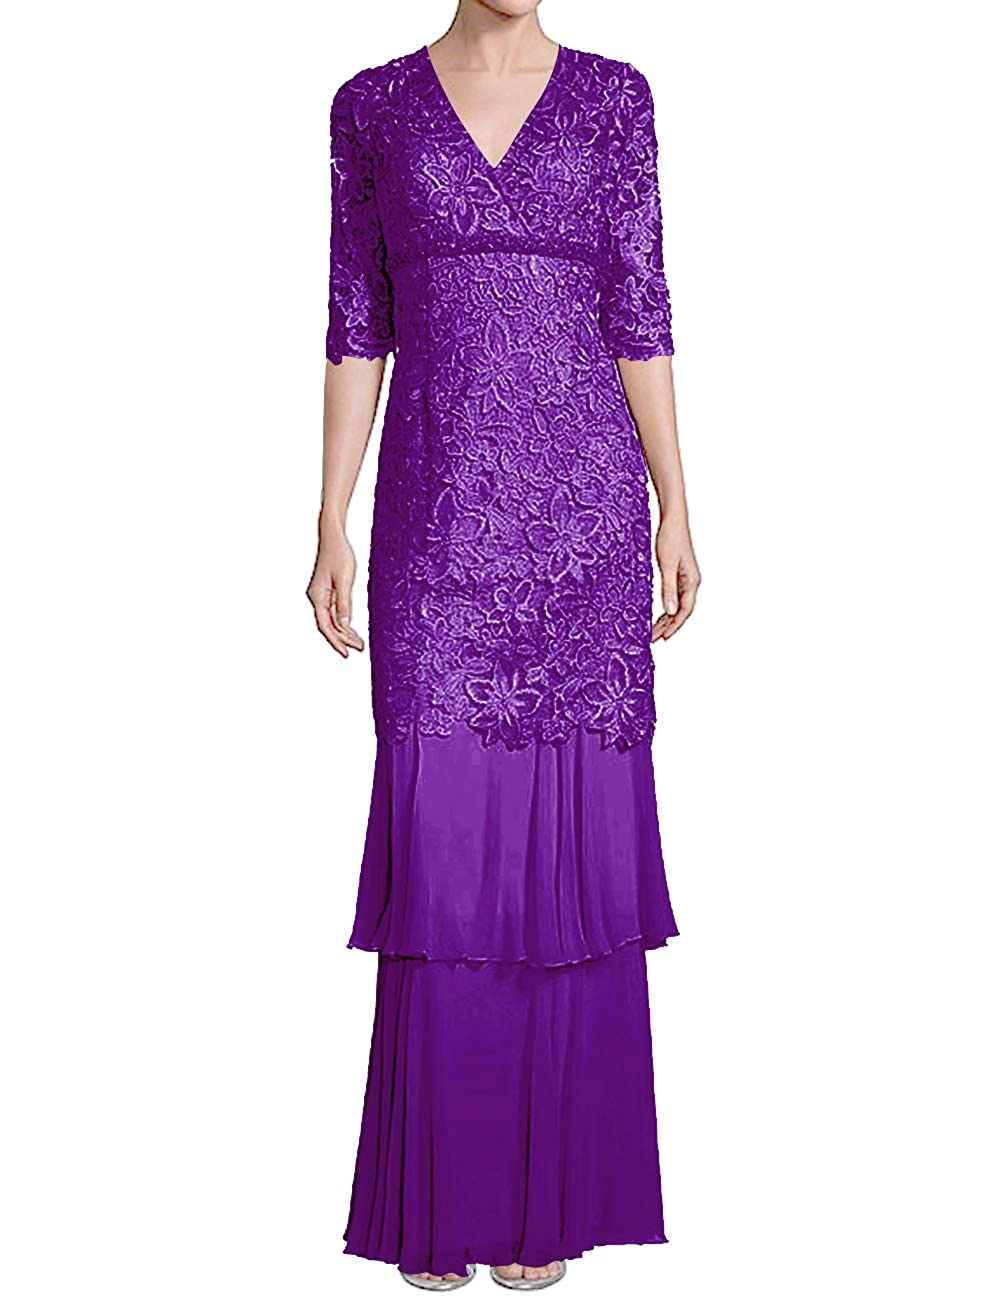 Dark Purple H.S.D Mother of The Bride Dresses Lace Formal Gowns Long Evening Dresses Sleeve Tiered